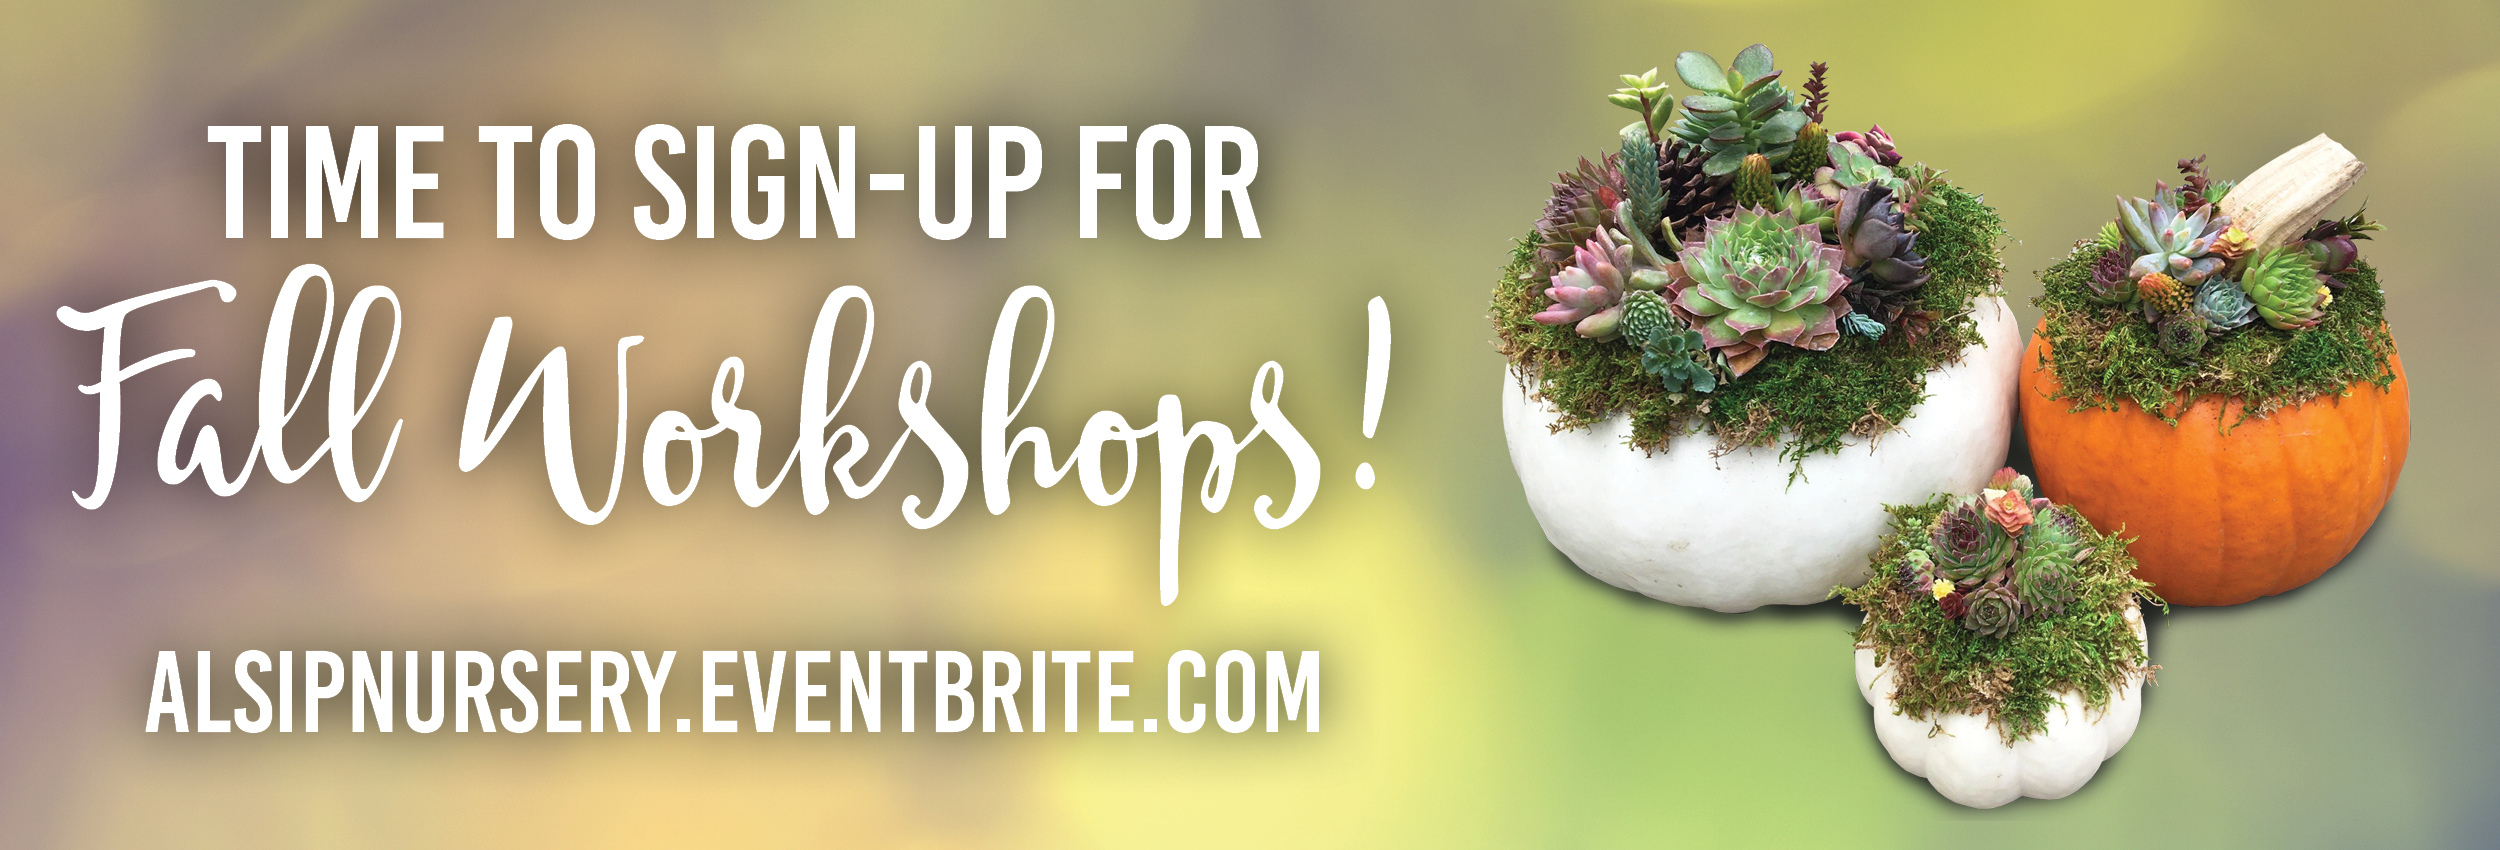 Time to Sign Up For Fall Workshops